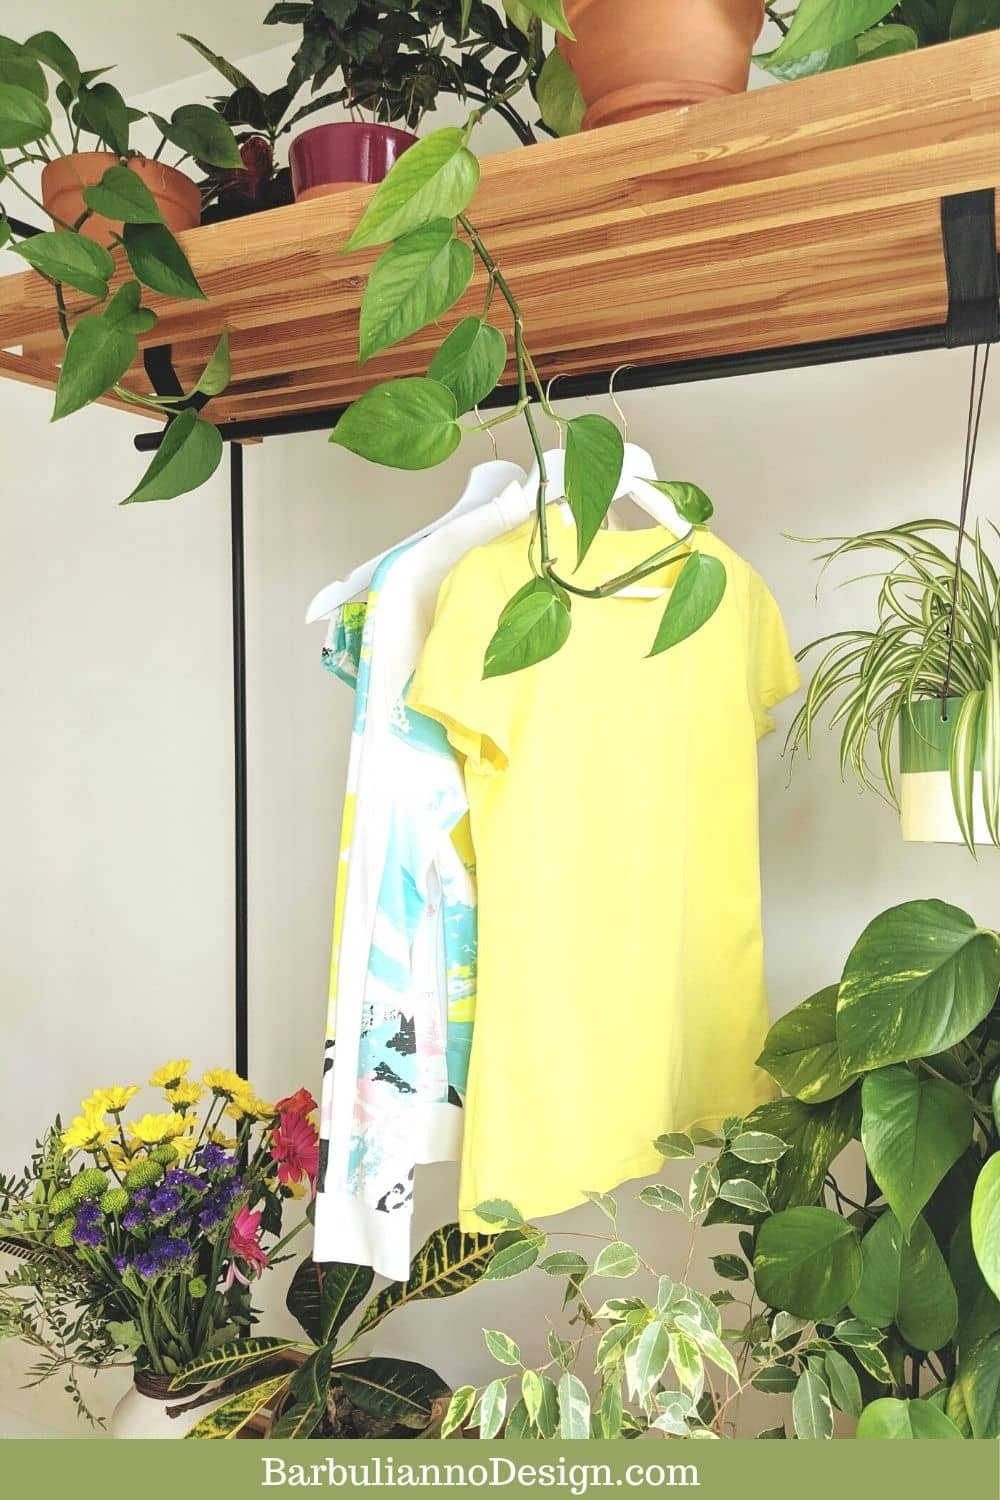 Sustainable wardrobe decorated with plants and fresh flowers